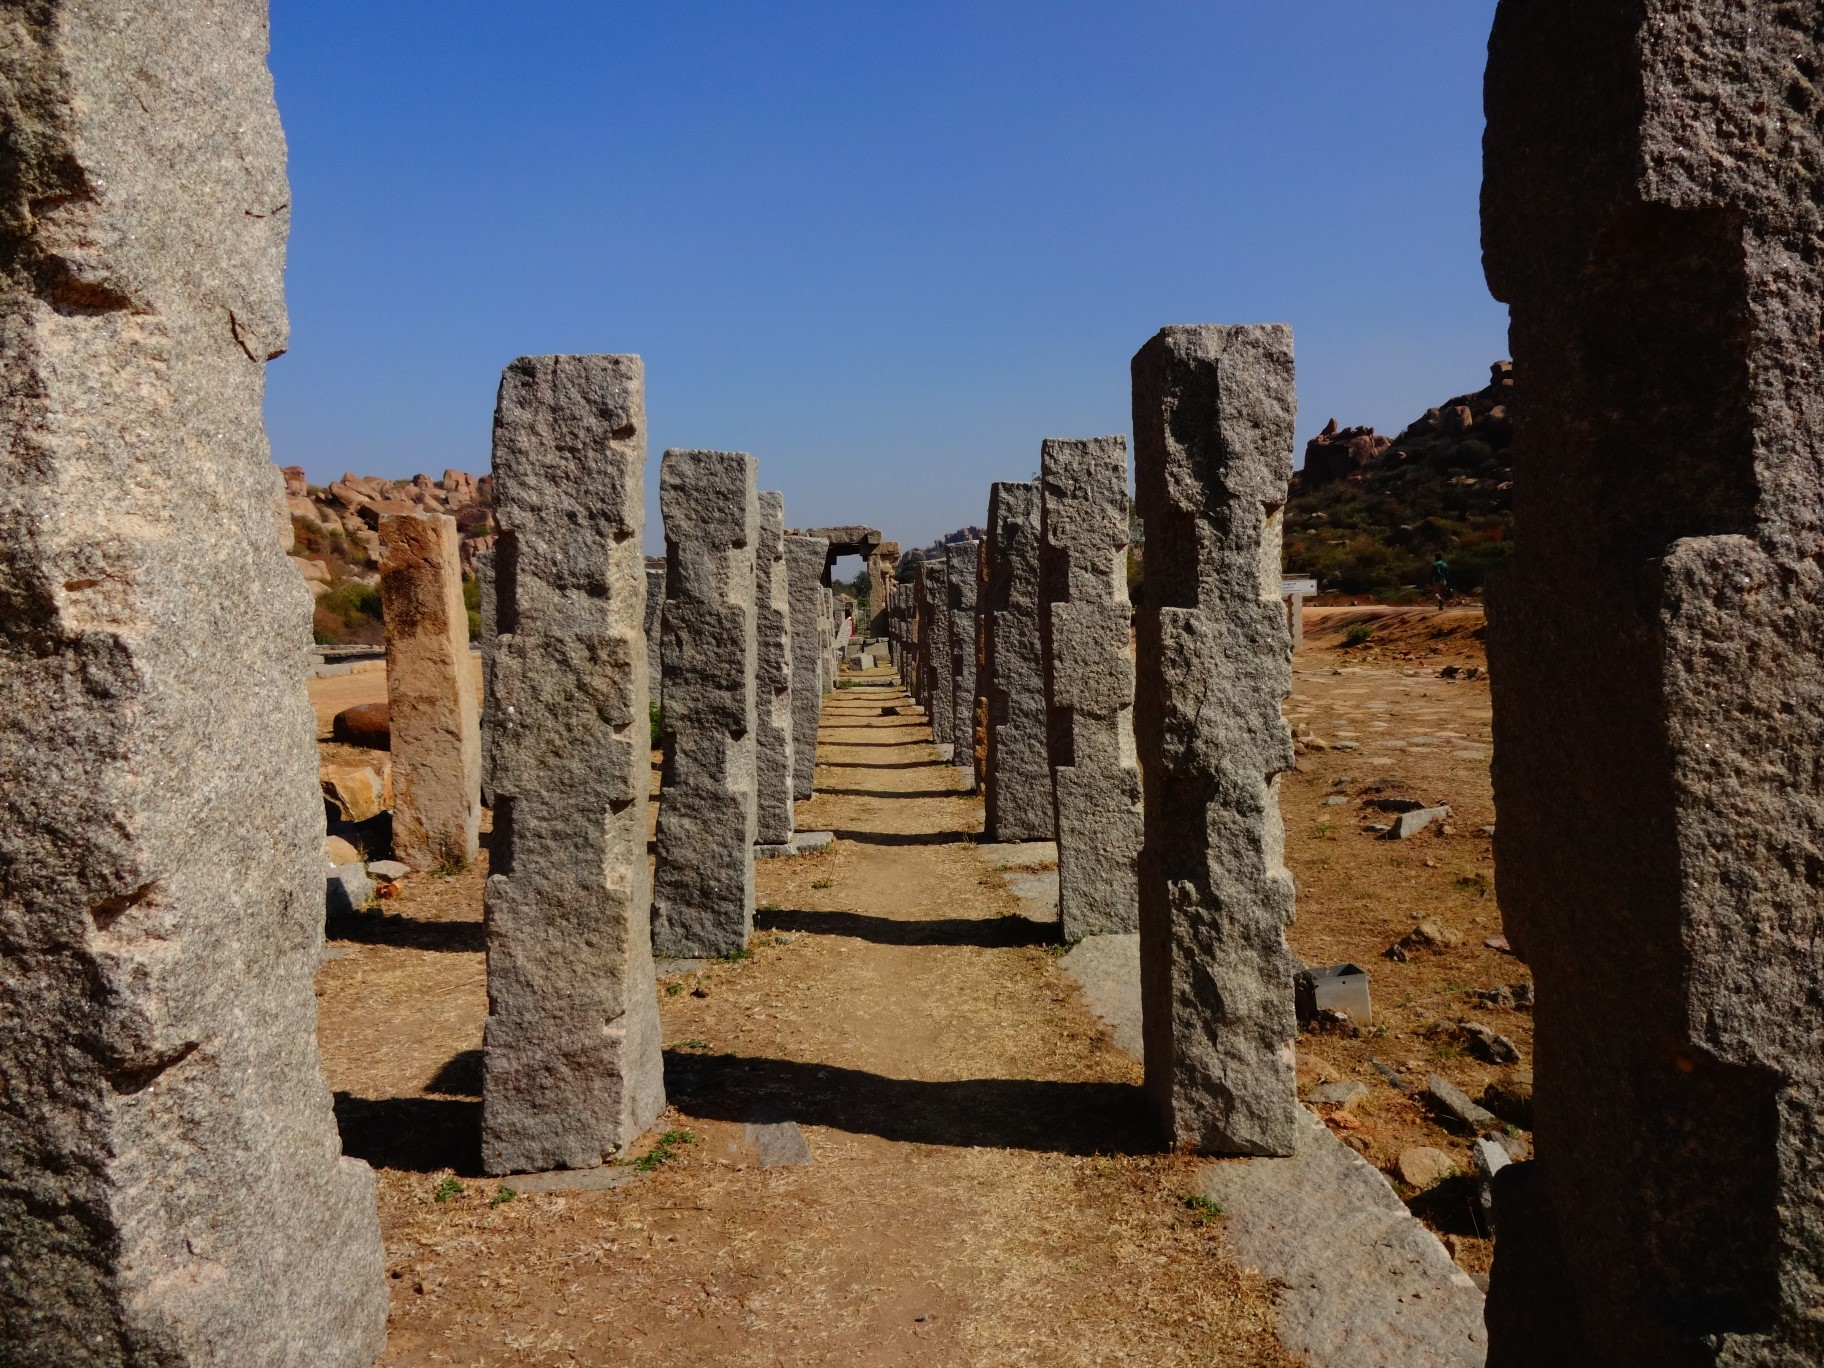 Pillars where the royal elephants and horses were displayed during the Vijayanagara Empire